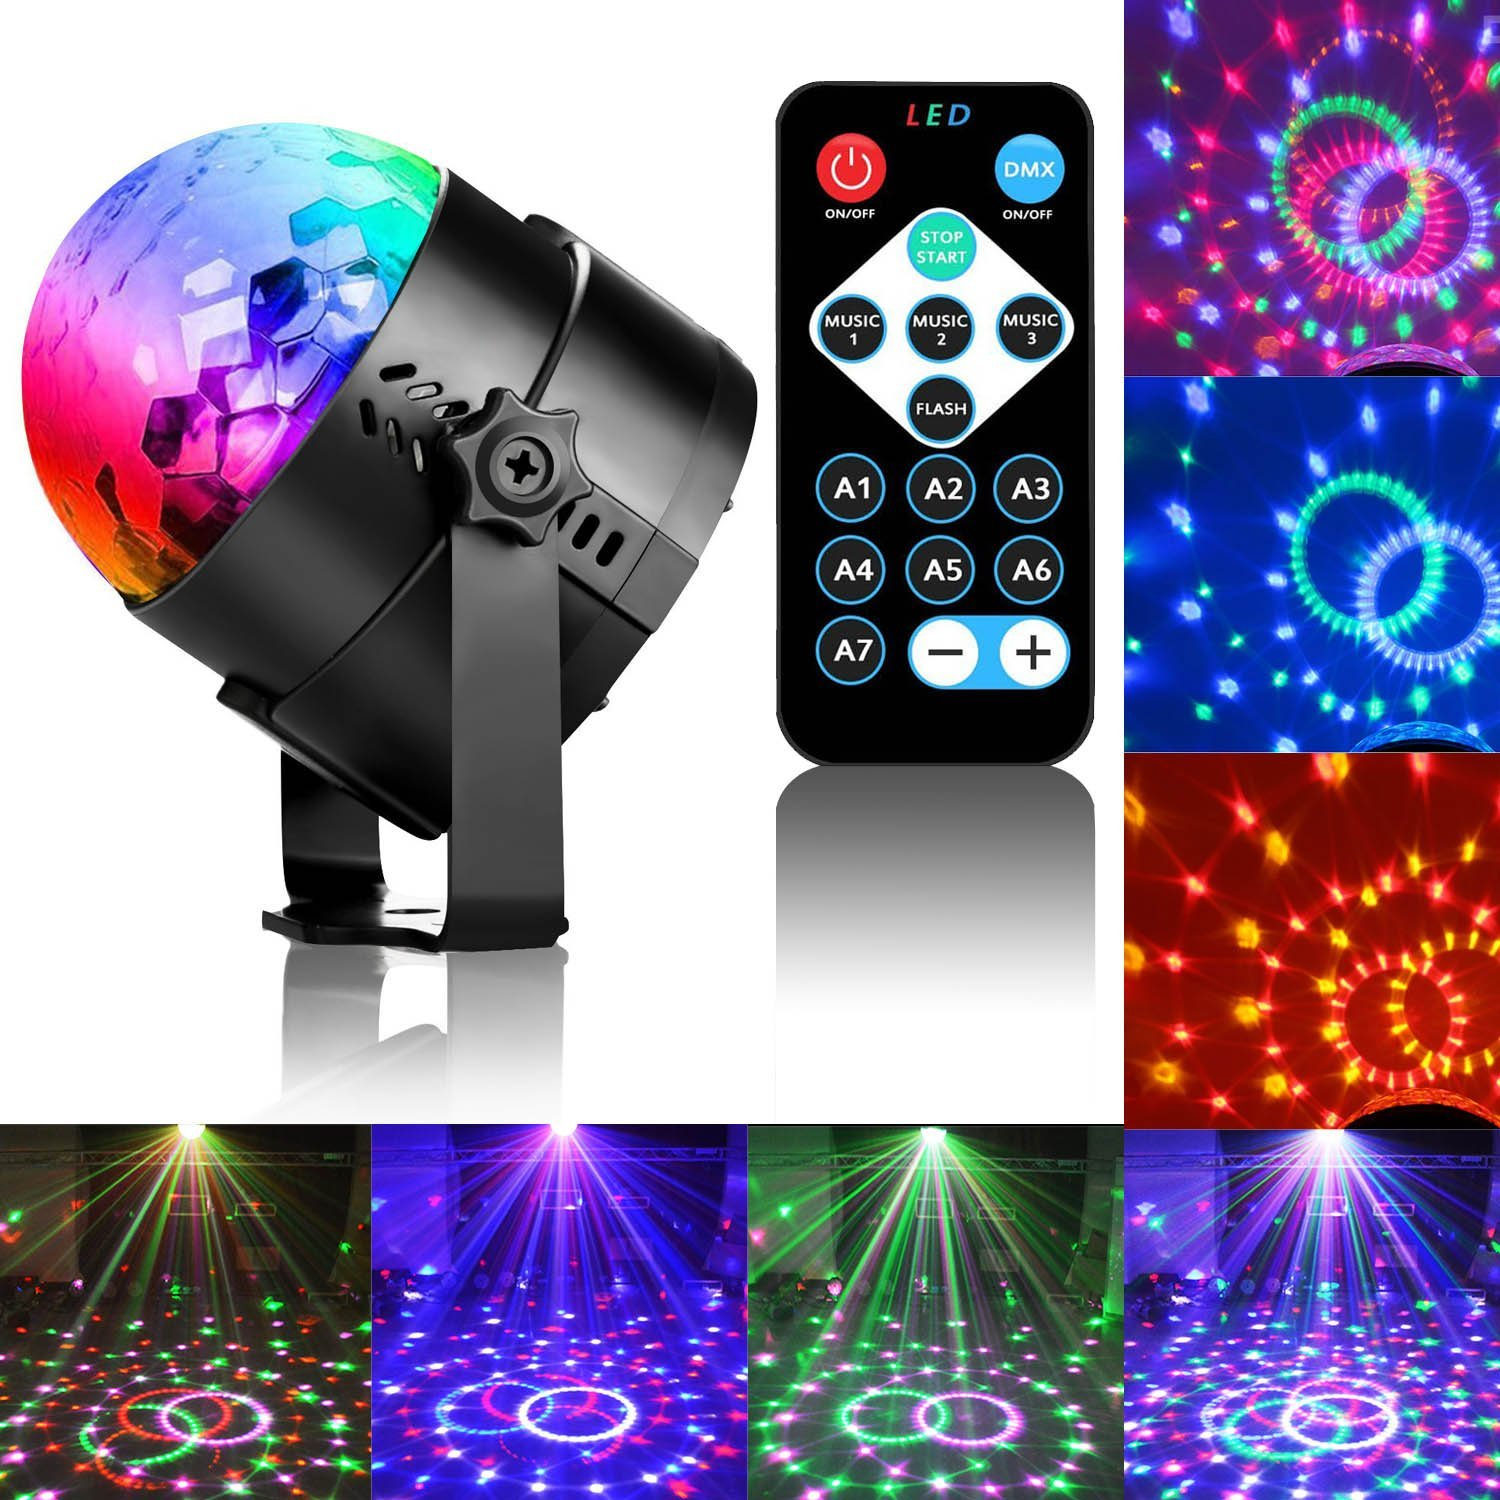 16 Disco Ball LED Party Dj Lights with Remote Control RBG Strobe Led Lamp 7 Modes